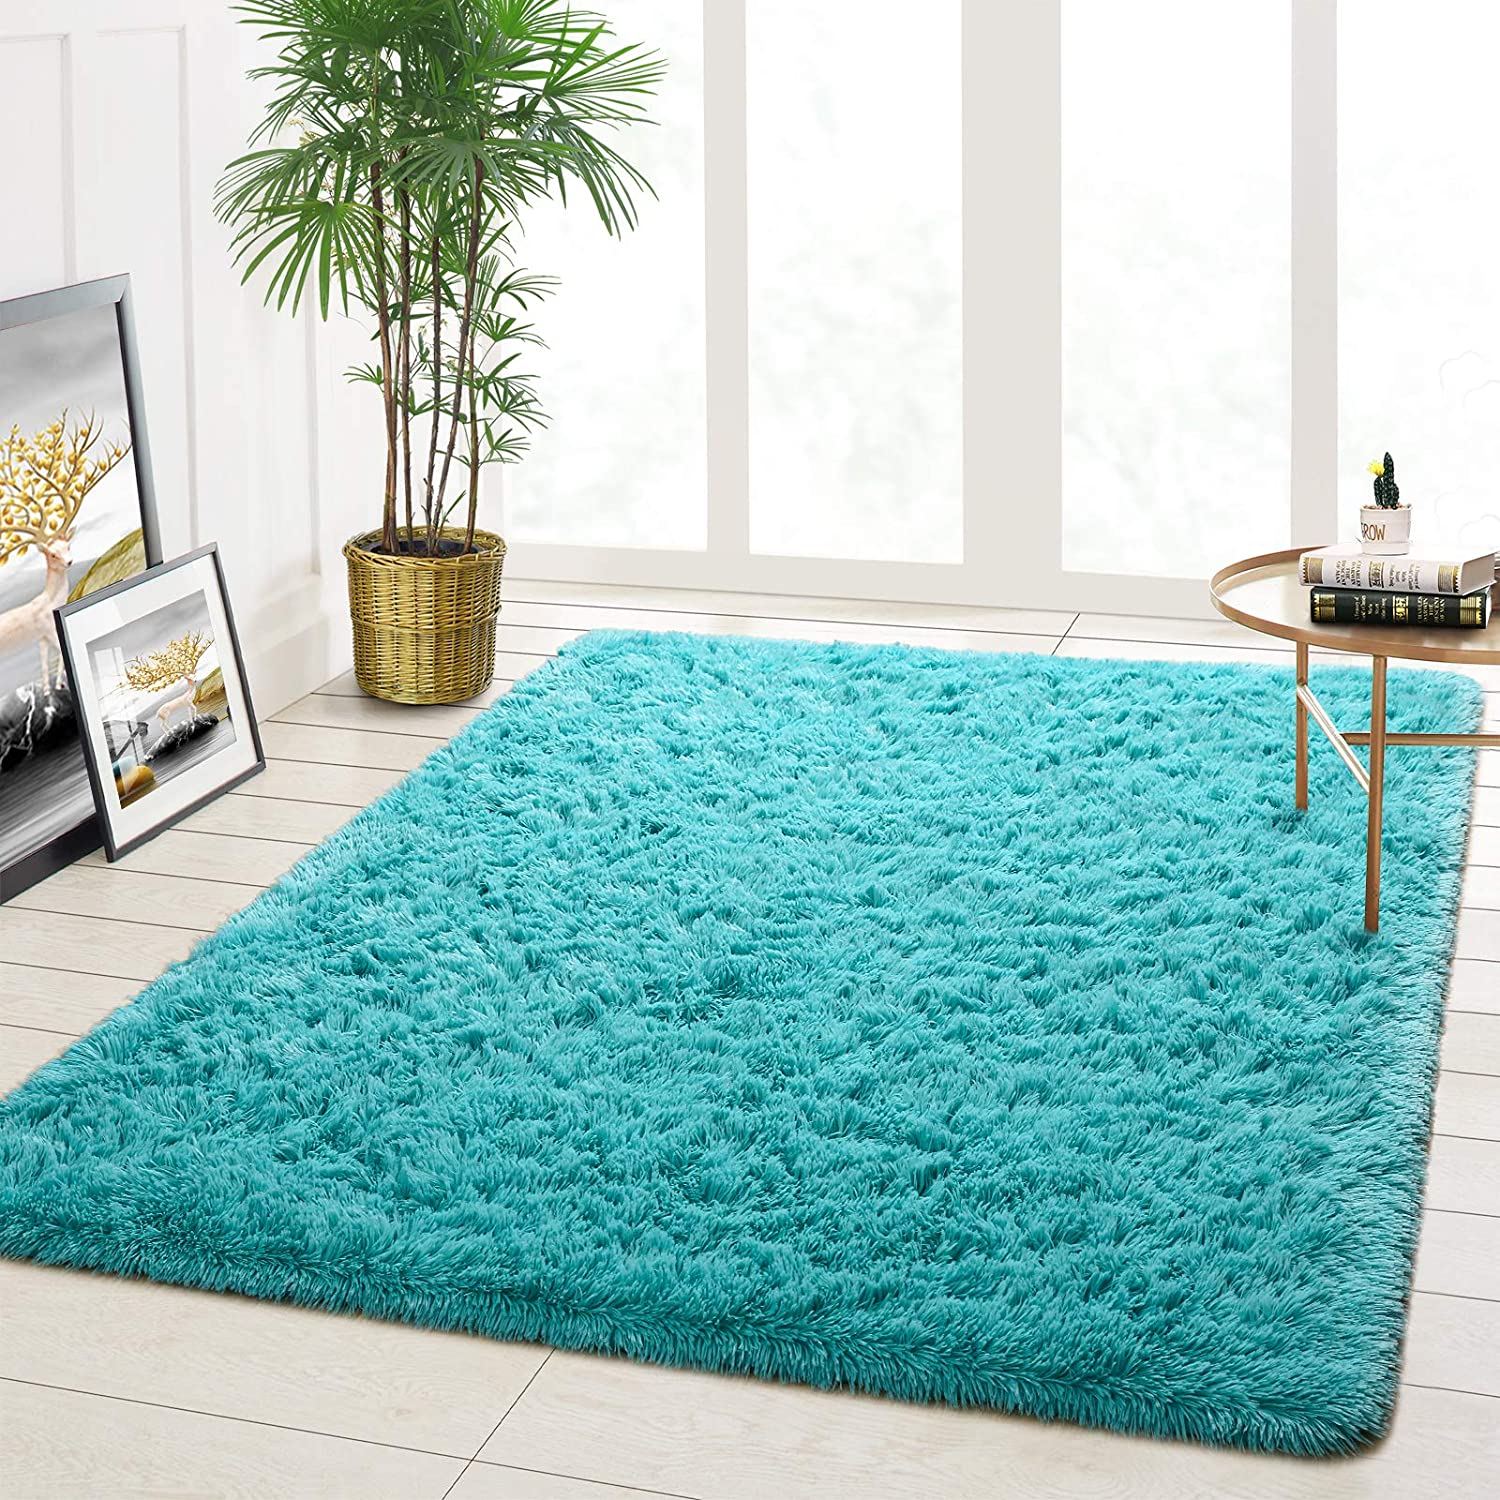 Goffee Ultra Soft Fluffy Area Rugs for Bedroom Living Room, Shaggy Rugs for Kids Boys Baby Room, Modern Furry Rugs Large Floor Carpet for Children Bedroom Dorm Home Decor, 4ft x 5.3ft, Blue